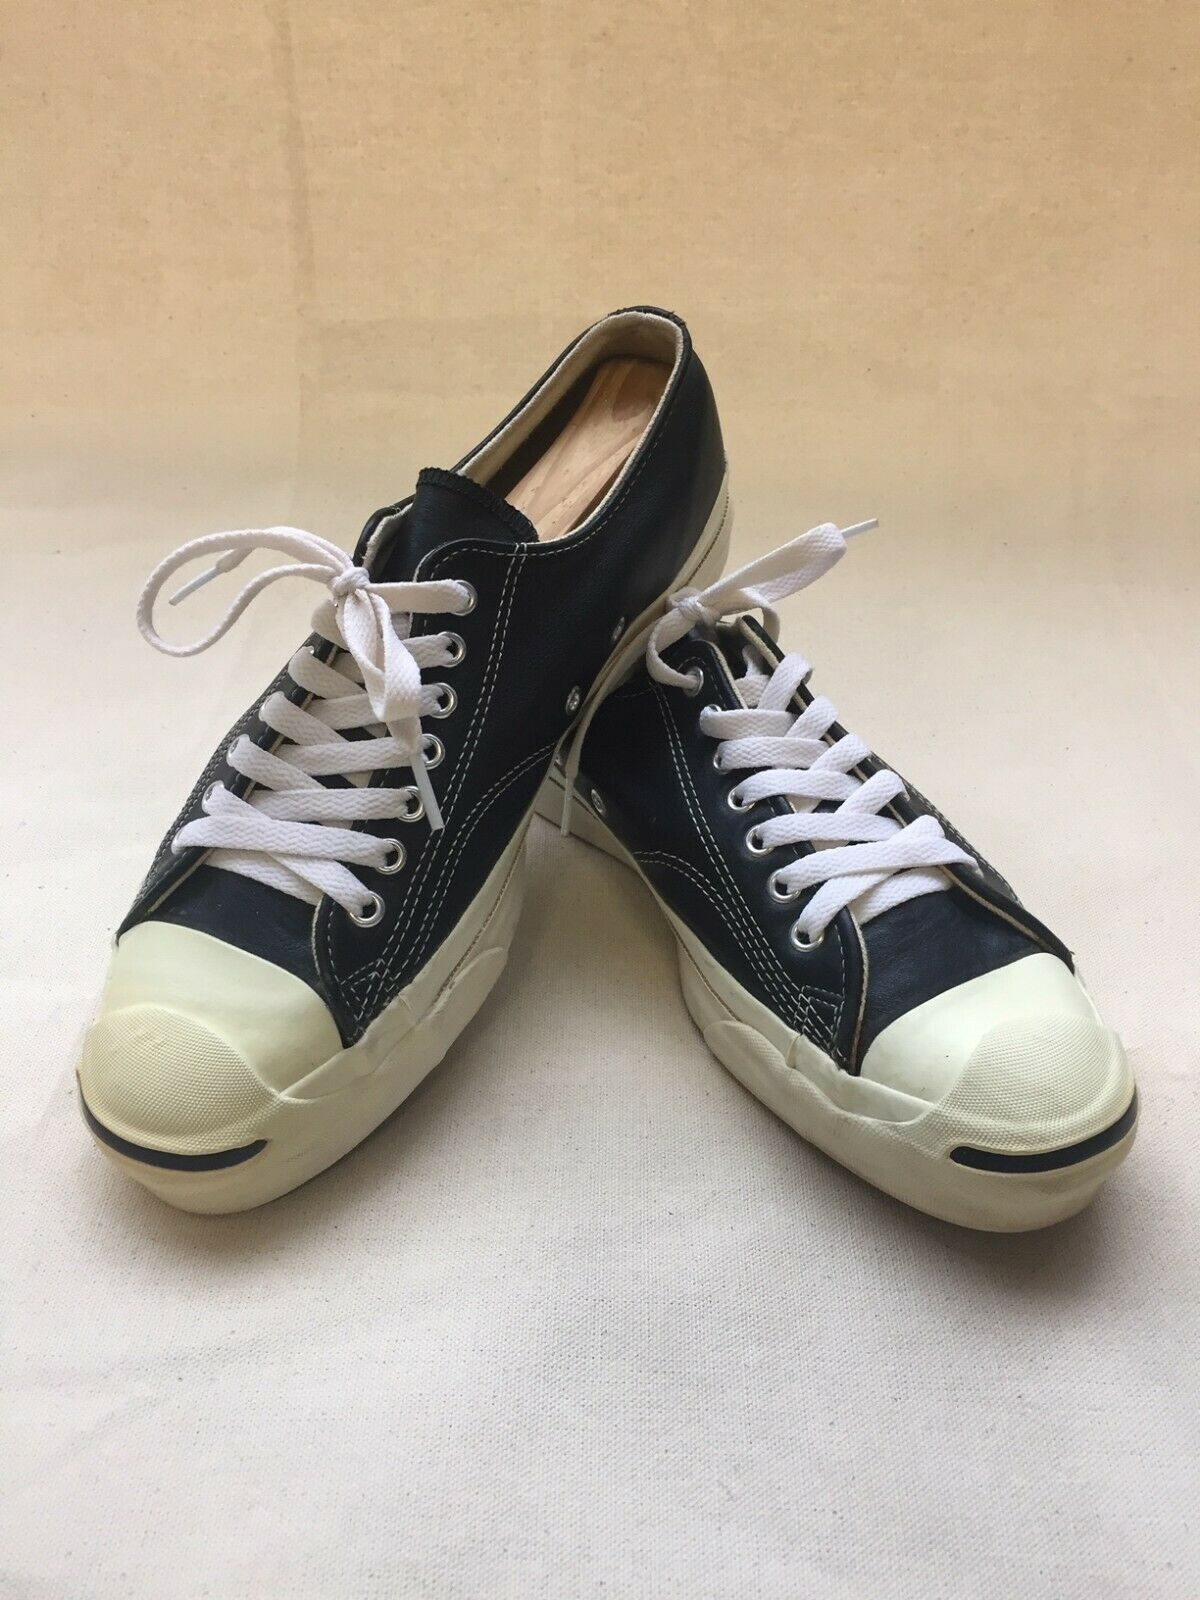 JACK PURCELL VINTAGE OX | Shopee Malaysia